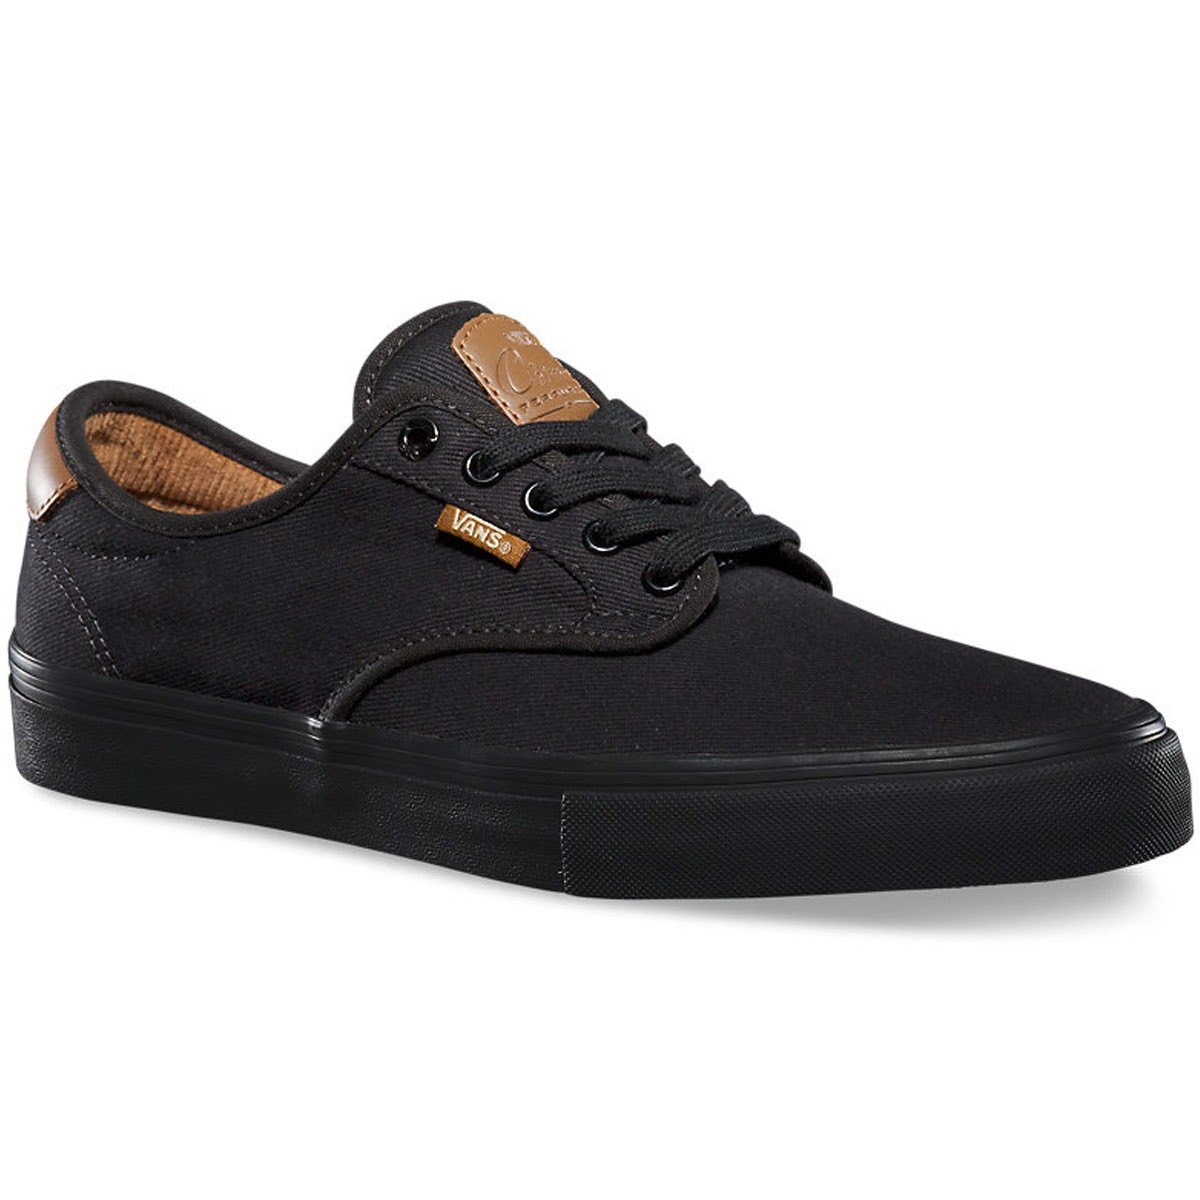 Vans Chima Ferguson Pro Shoes - Black/Black - 9.5